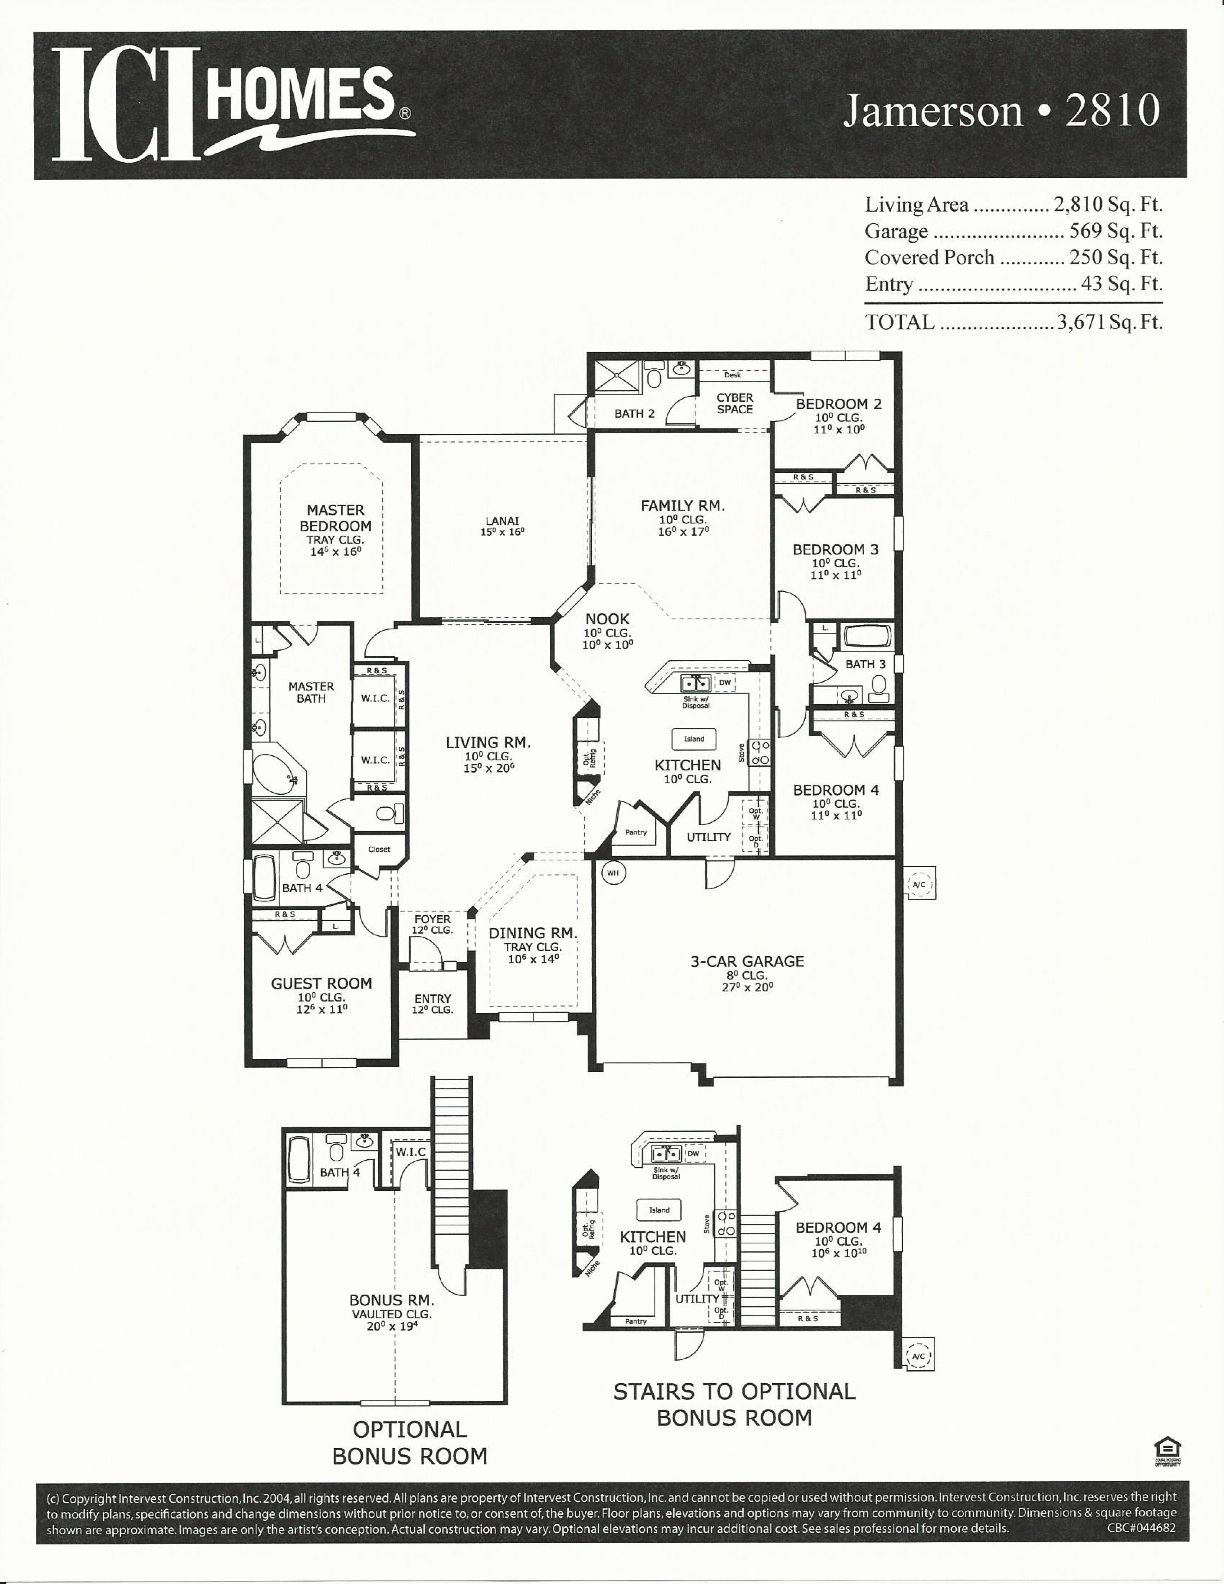 Avilla Jamerson Floor Plans in Kissimmee FL | Avilla by Ici ... on titan floor plans, clean floor plans, columbia floor plans, omega floor plans, coleman floor plans, remington floor plans, vanguard floor plans, access floor plans, ford floor plans, icon floor plans, crown floor plans, marathon floor plans, go floor plans, icc floor plans, bistro floor plans, sony floor plans, american eagle floor plans, champion floor plans, keystone floor plans, echo floor plans,